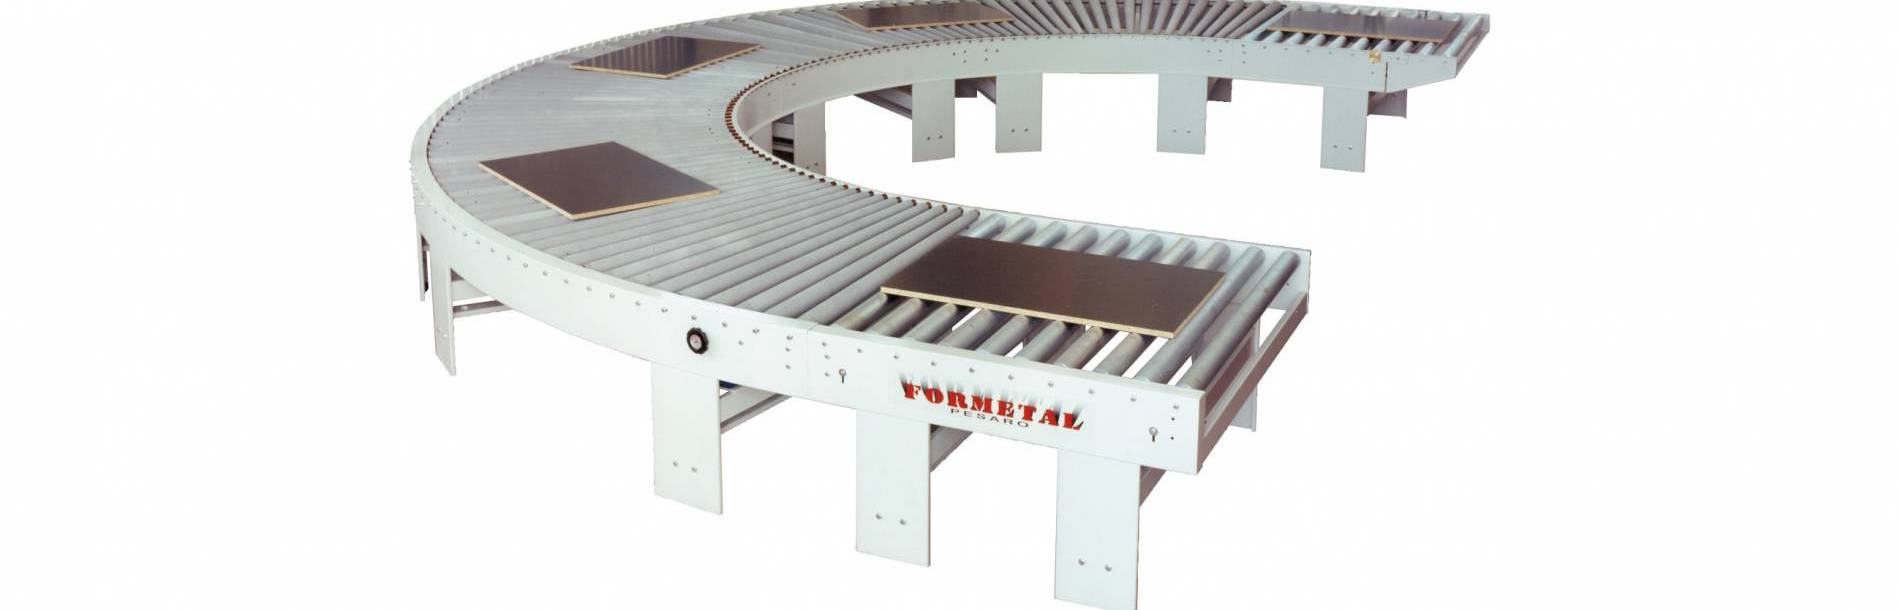 180 degrees Belt Conveyor